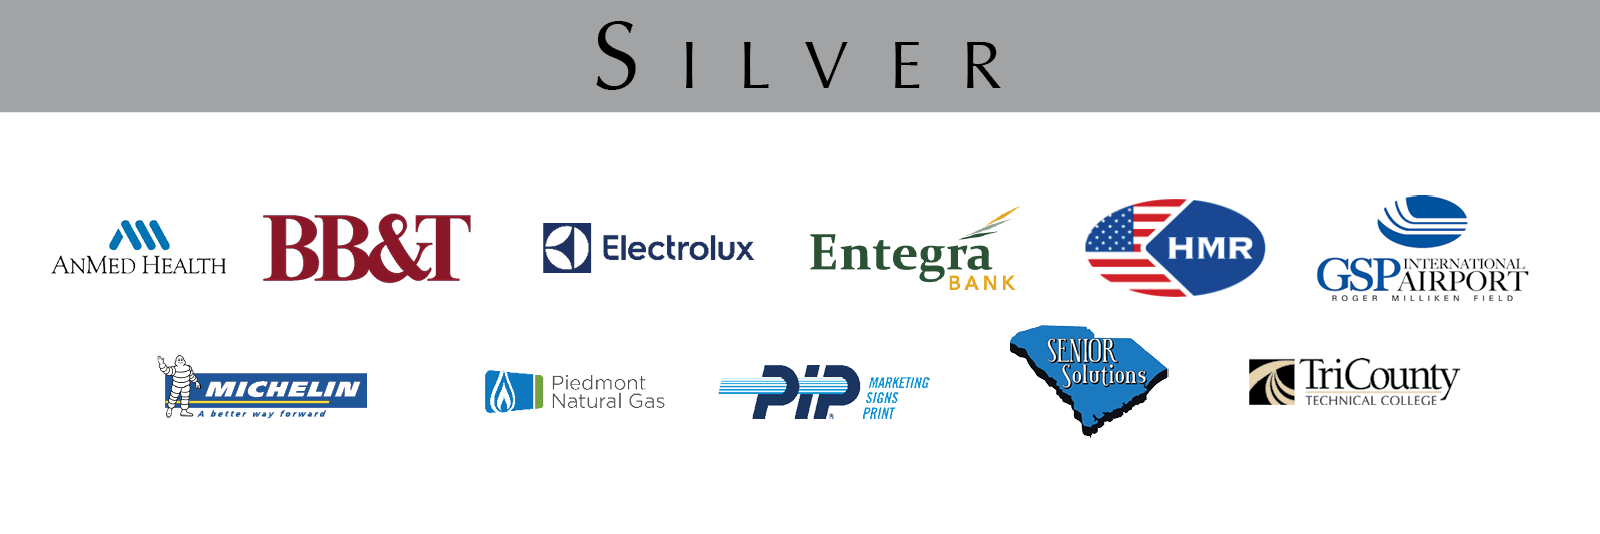 Website-Partnership-Slide-Silver(1).png